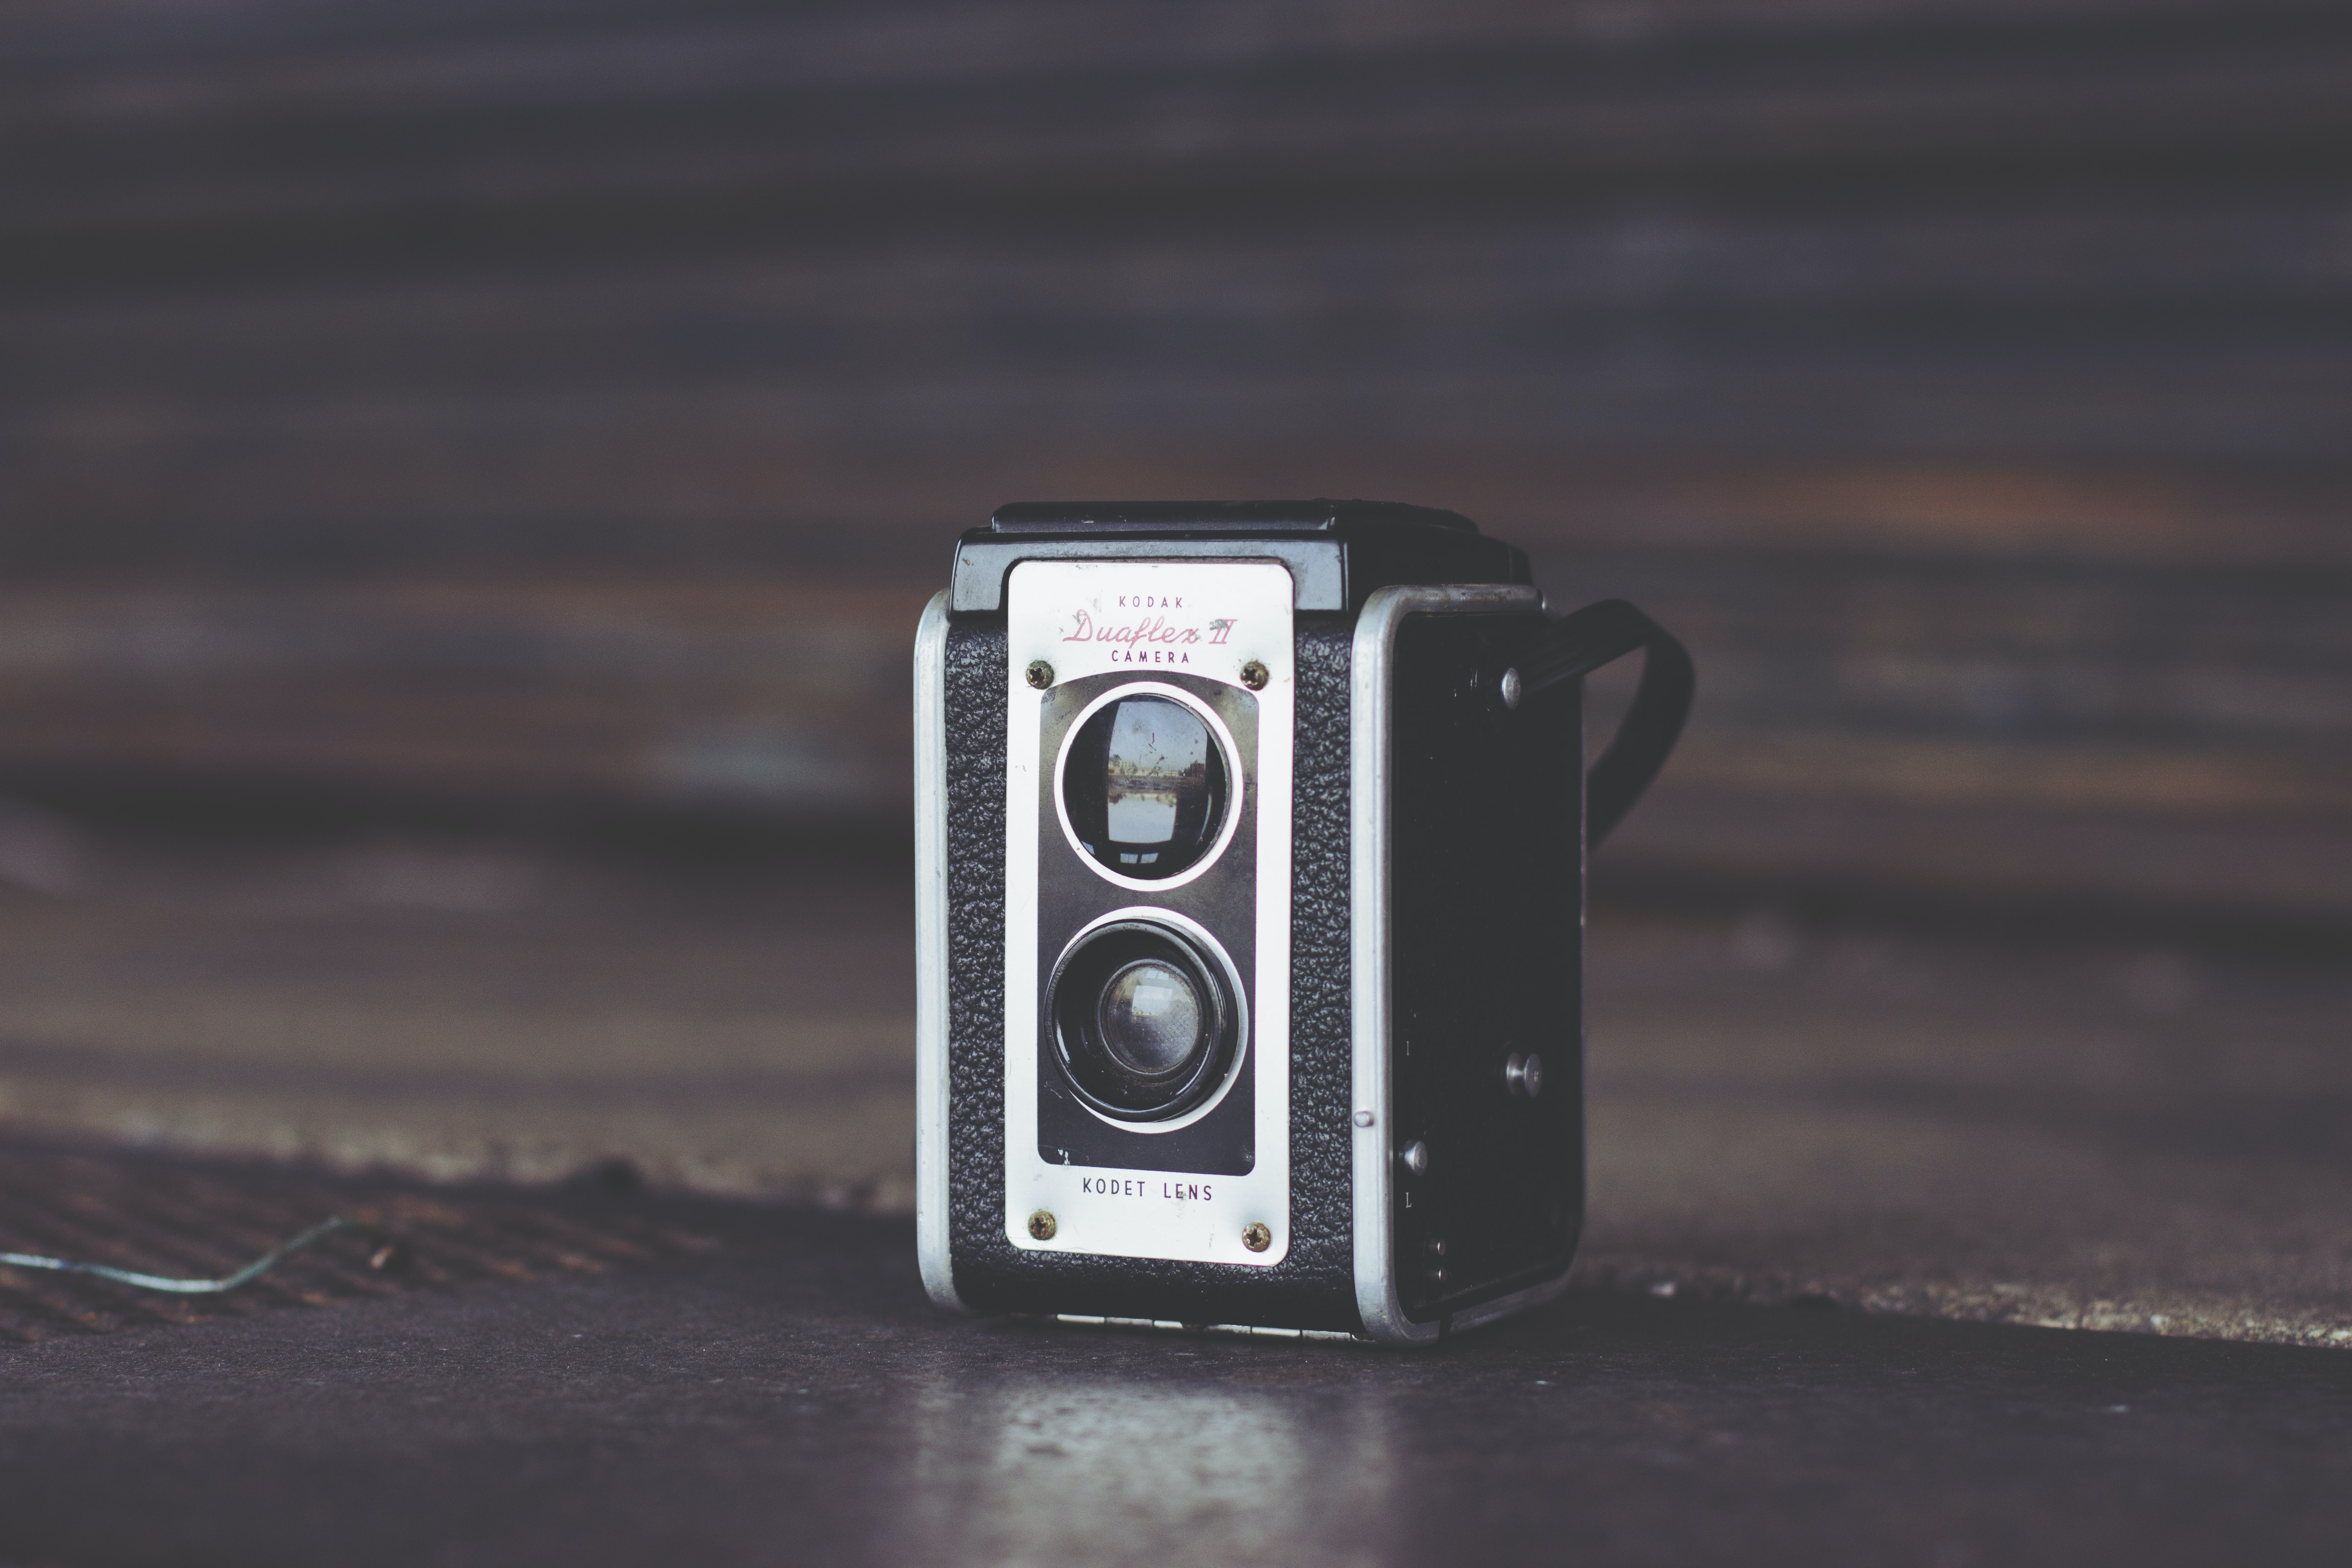 focus photo of black and gray vintage camera on brown surface